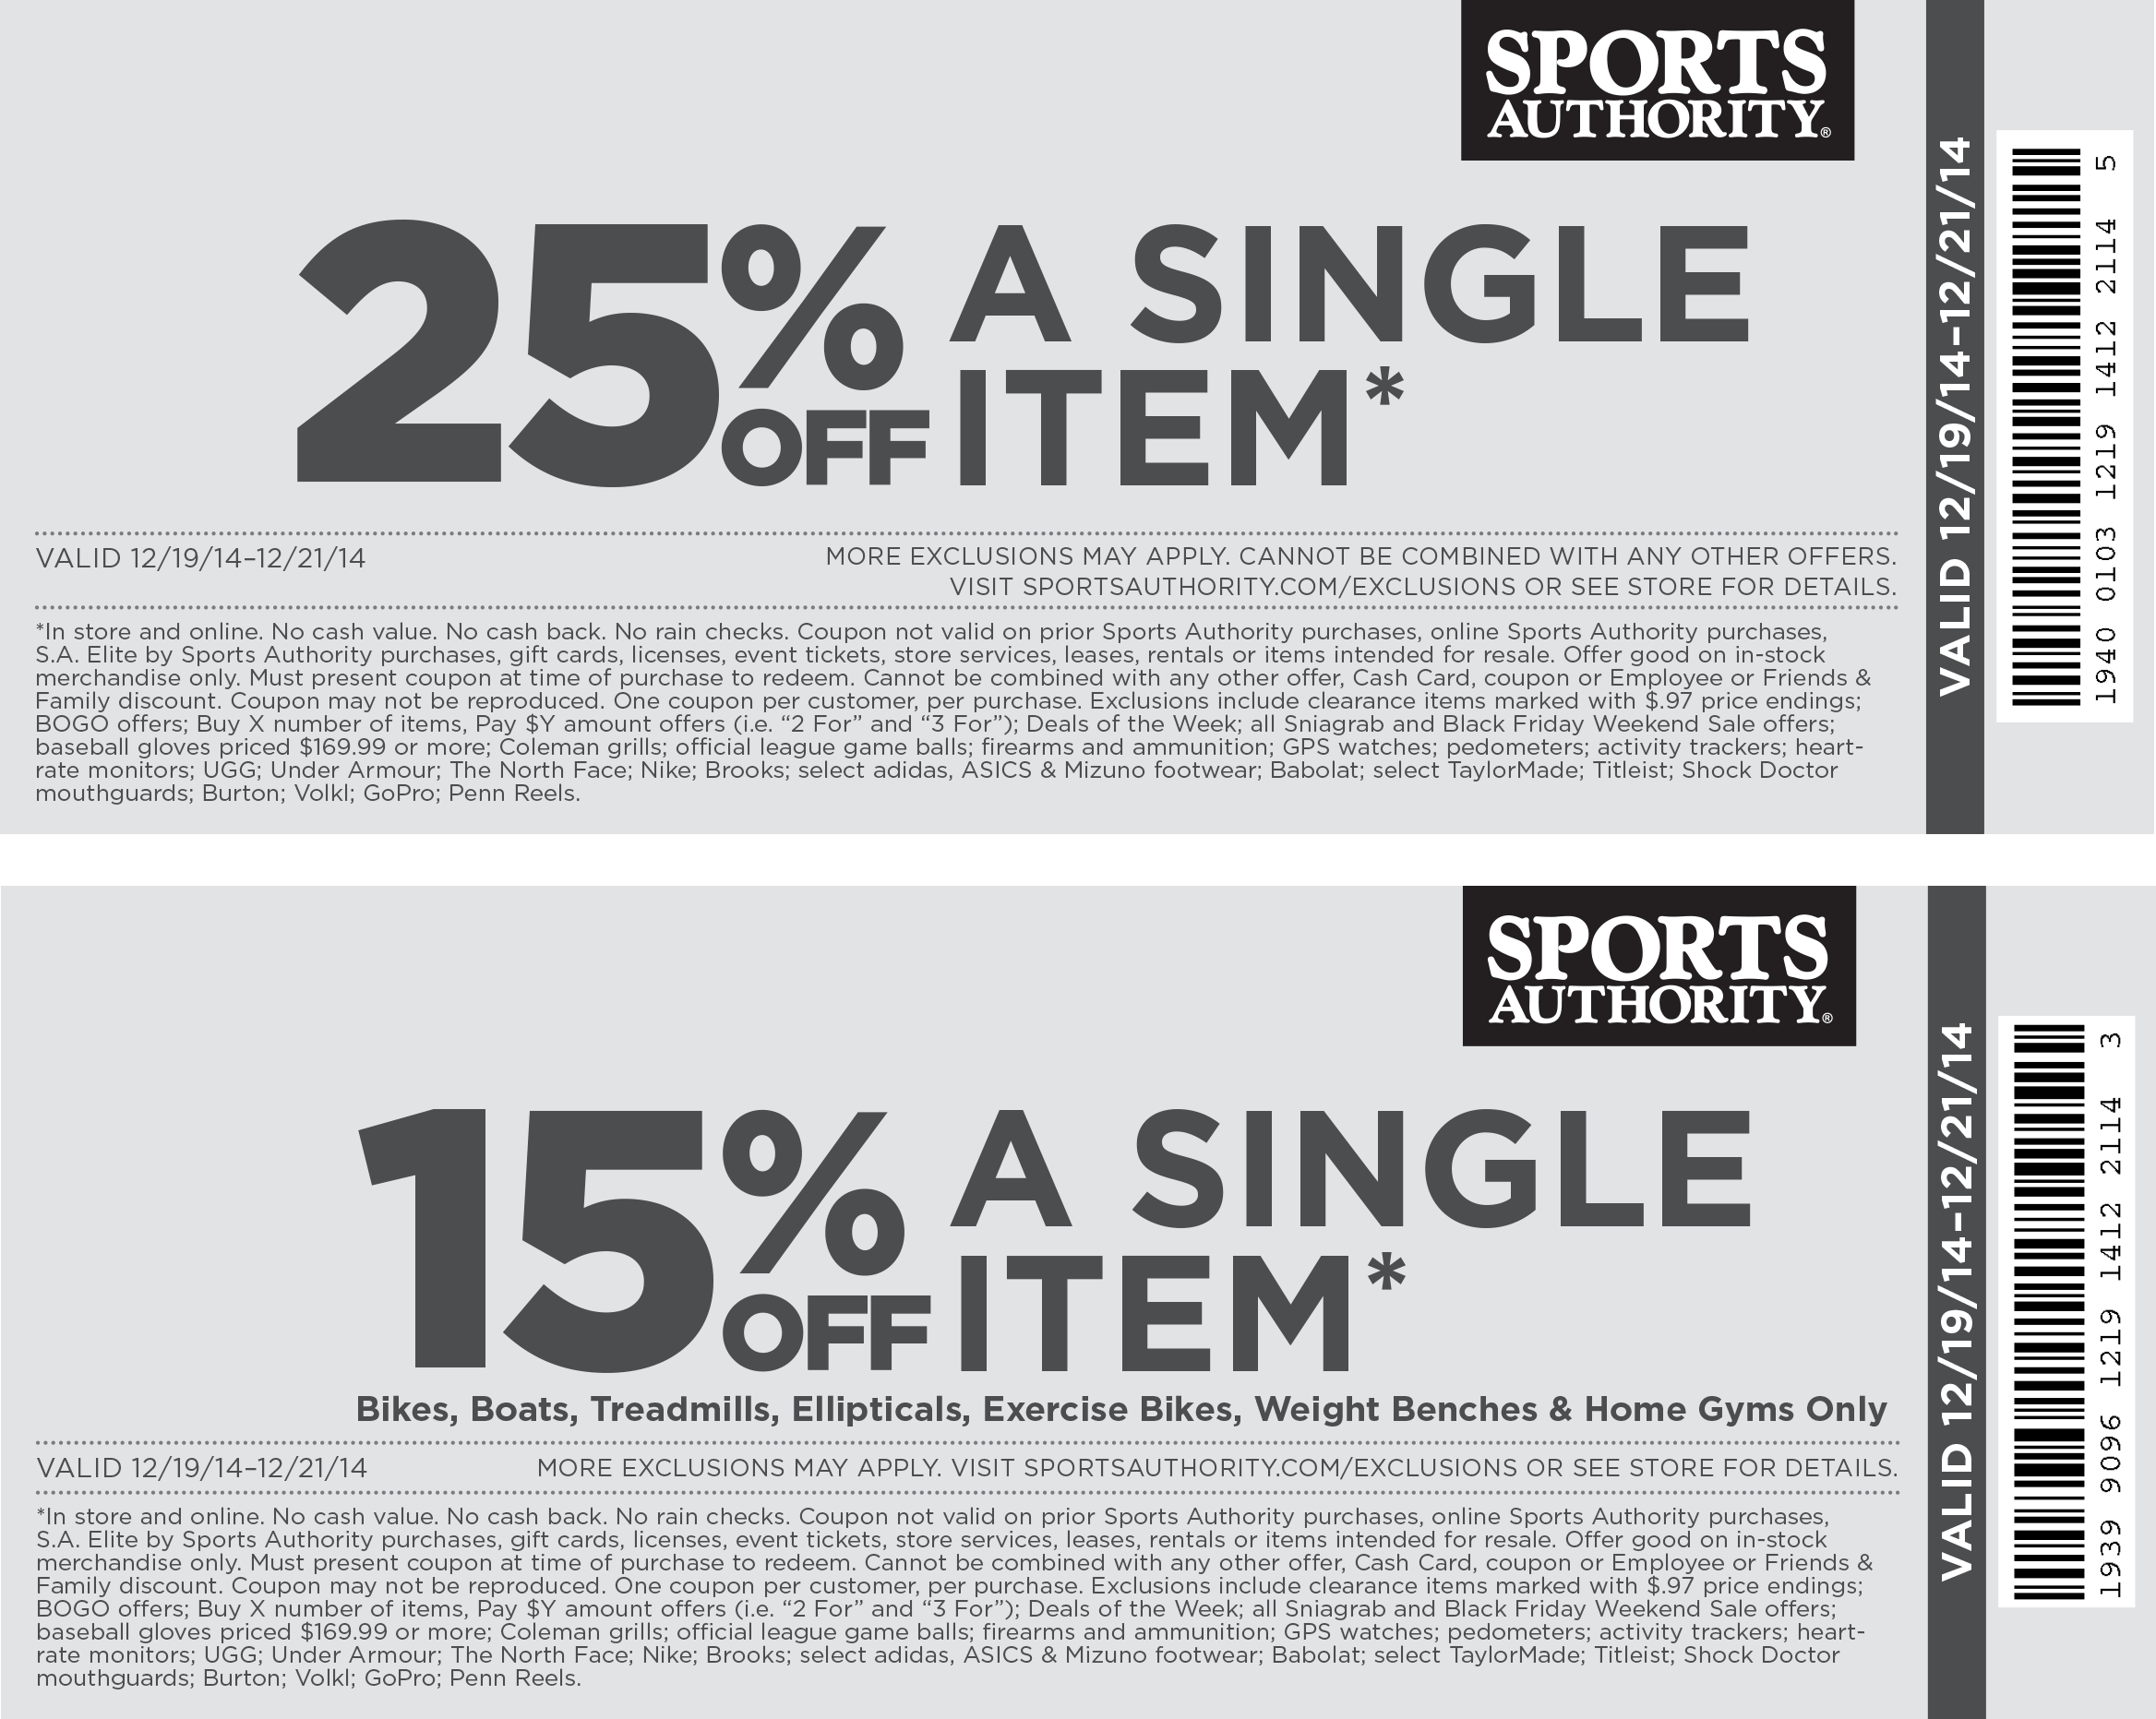 Sports authority discount coupons